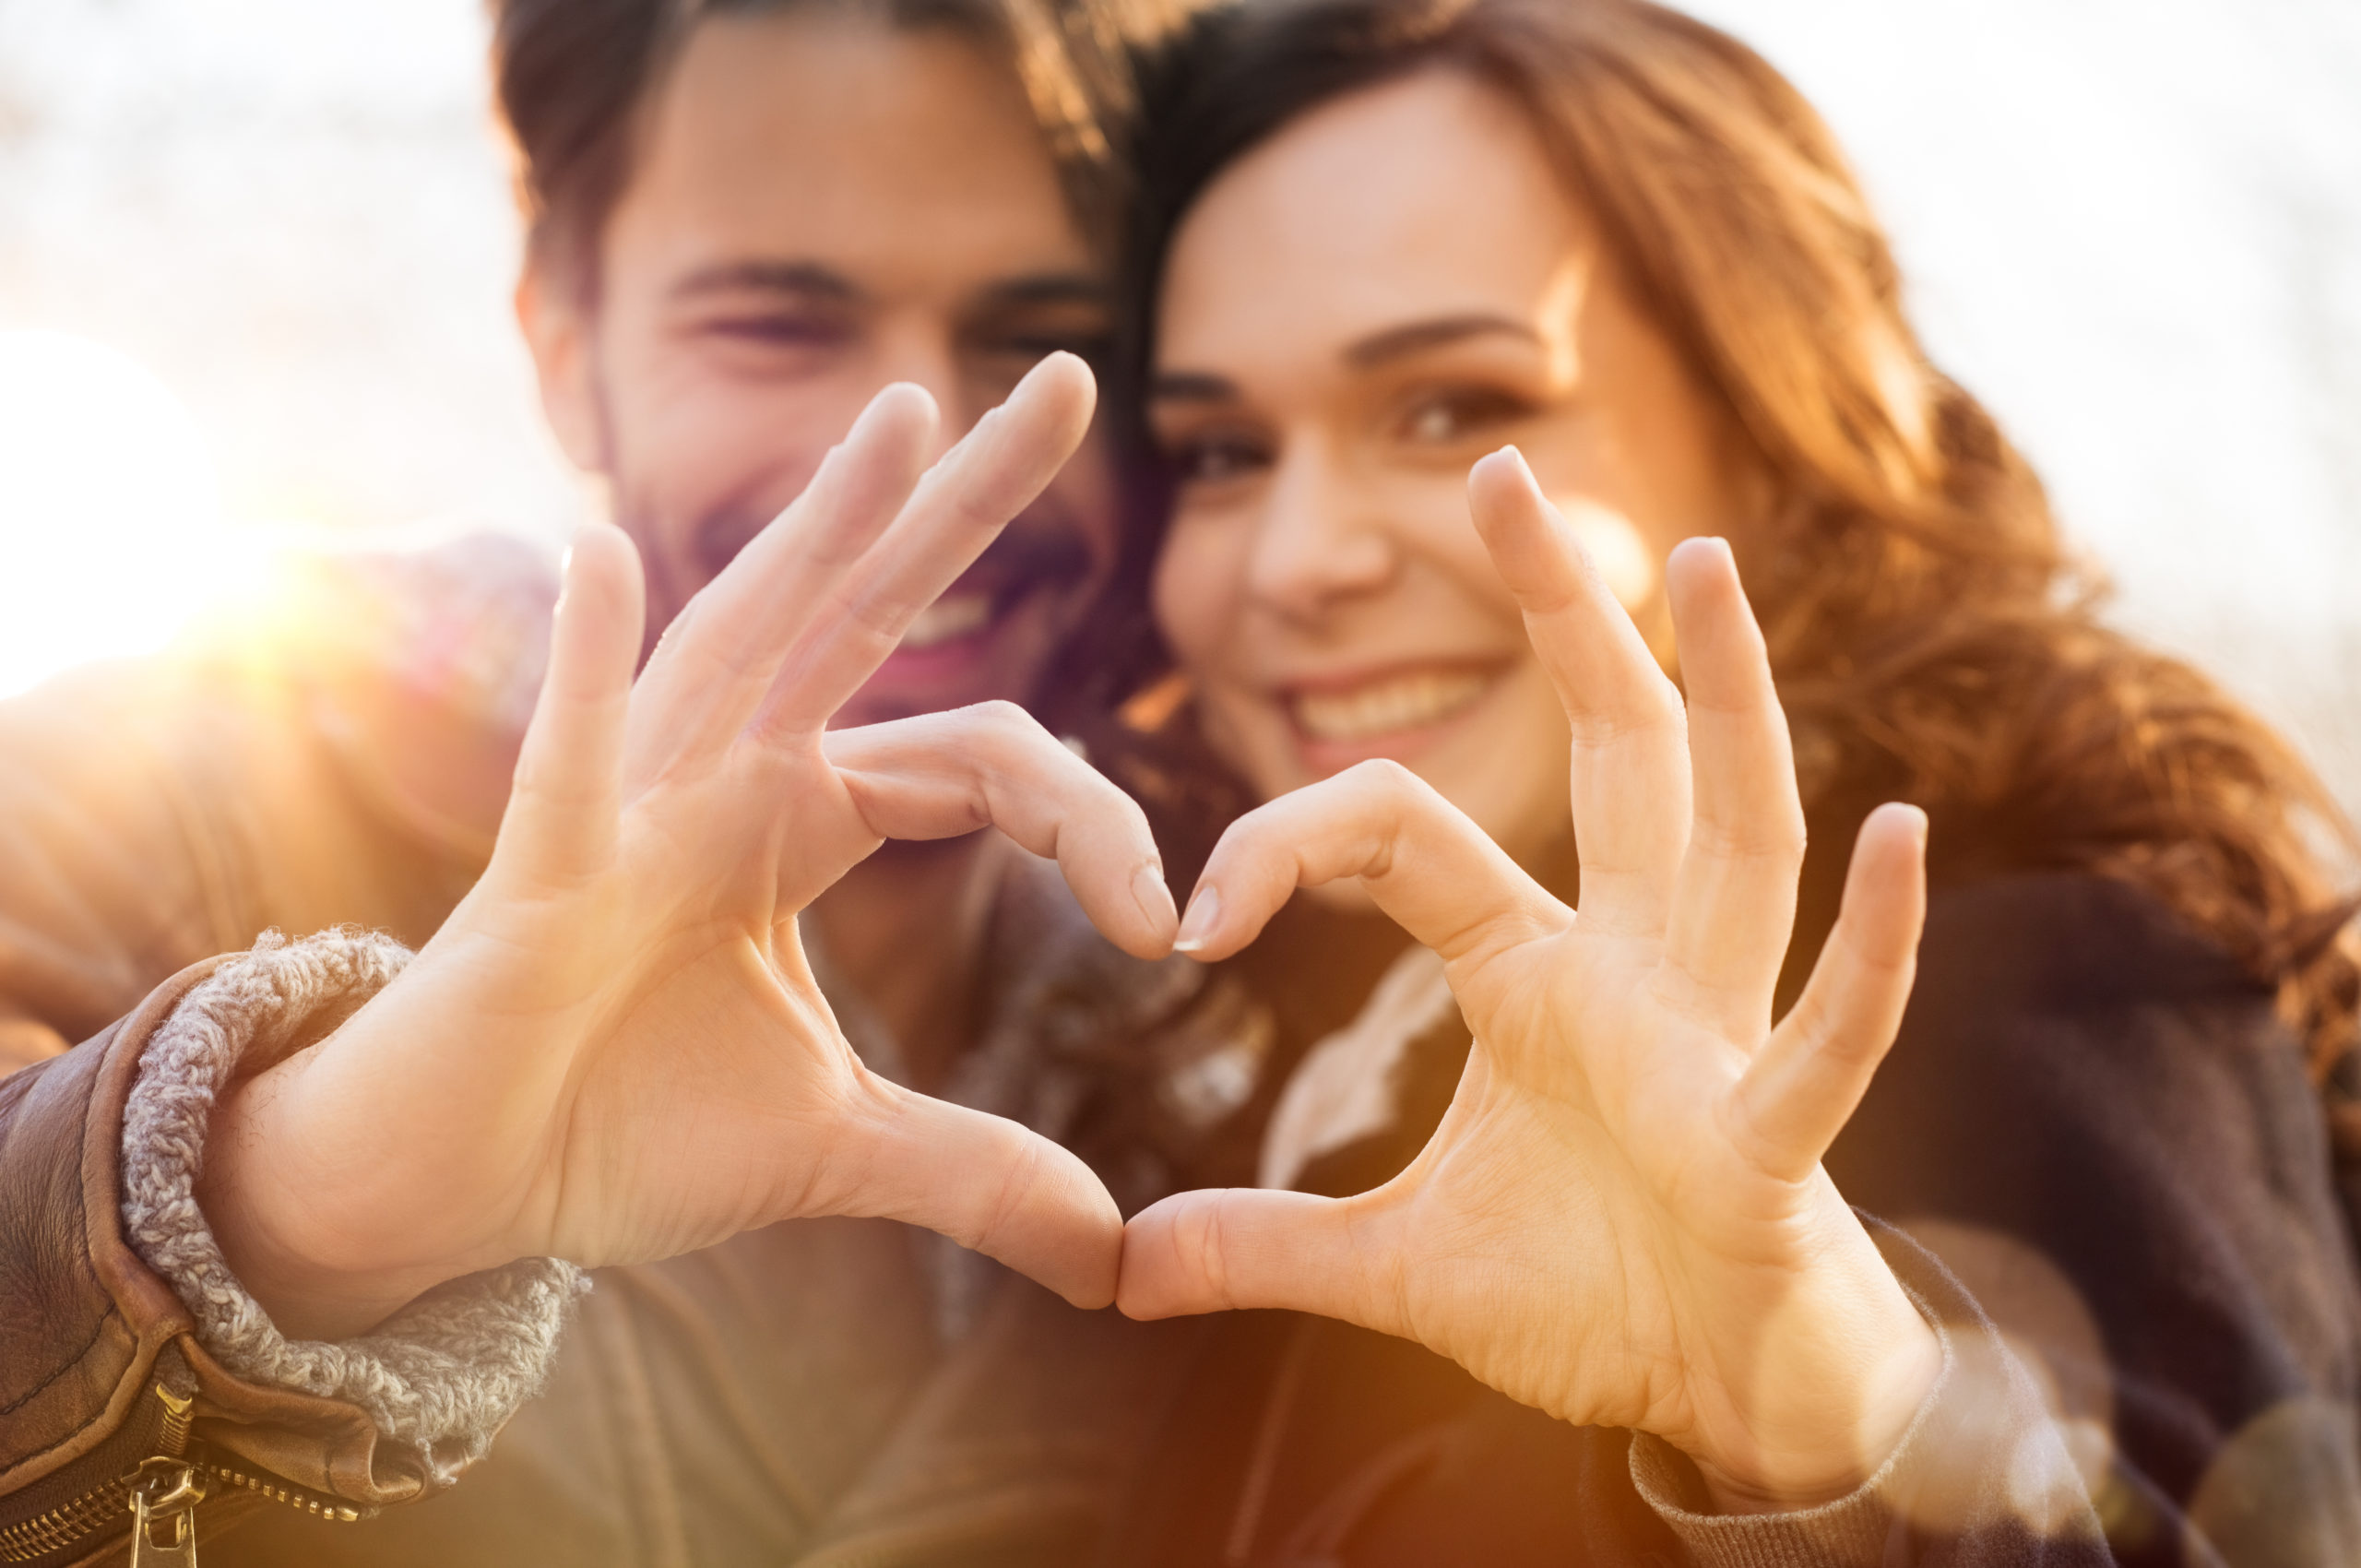 Closeup,Of,Couple,Making,Heart,Shape,With,Hands